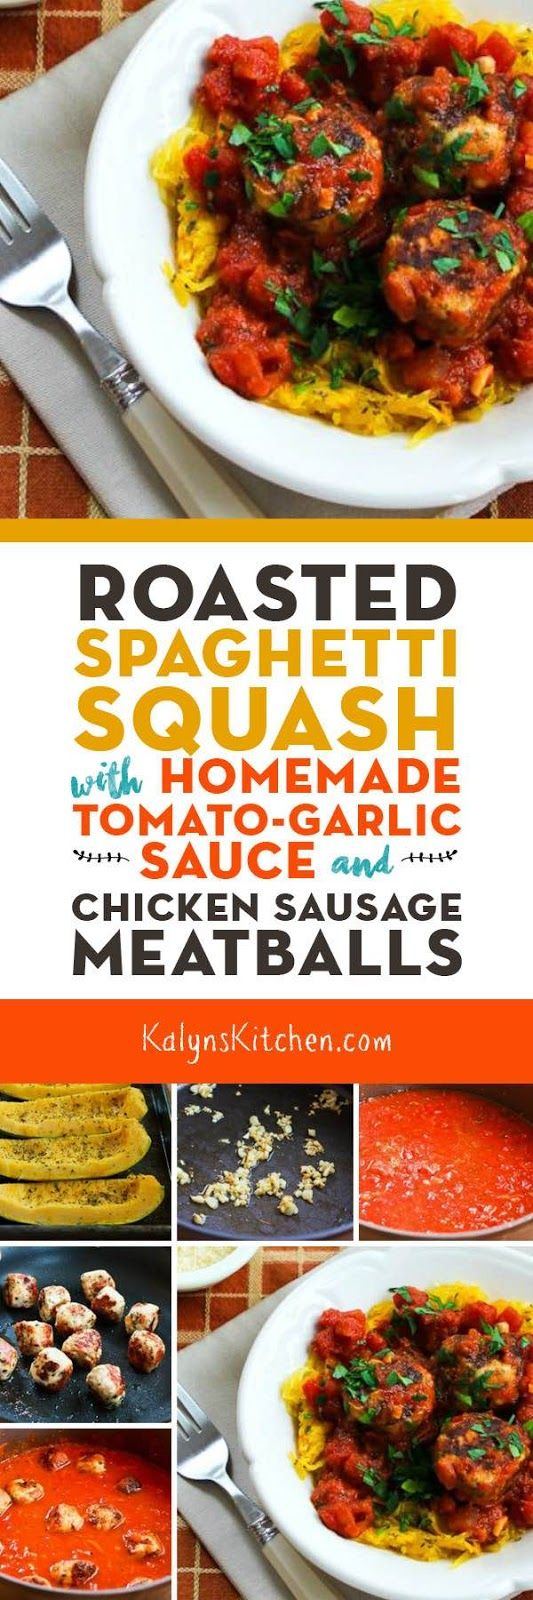 Roasted Spaghetti Squash with Homemade Tomato-Garlic Sauce and Chicken Sausage Meatballs